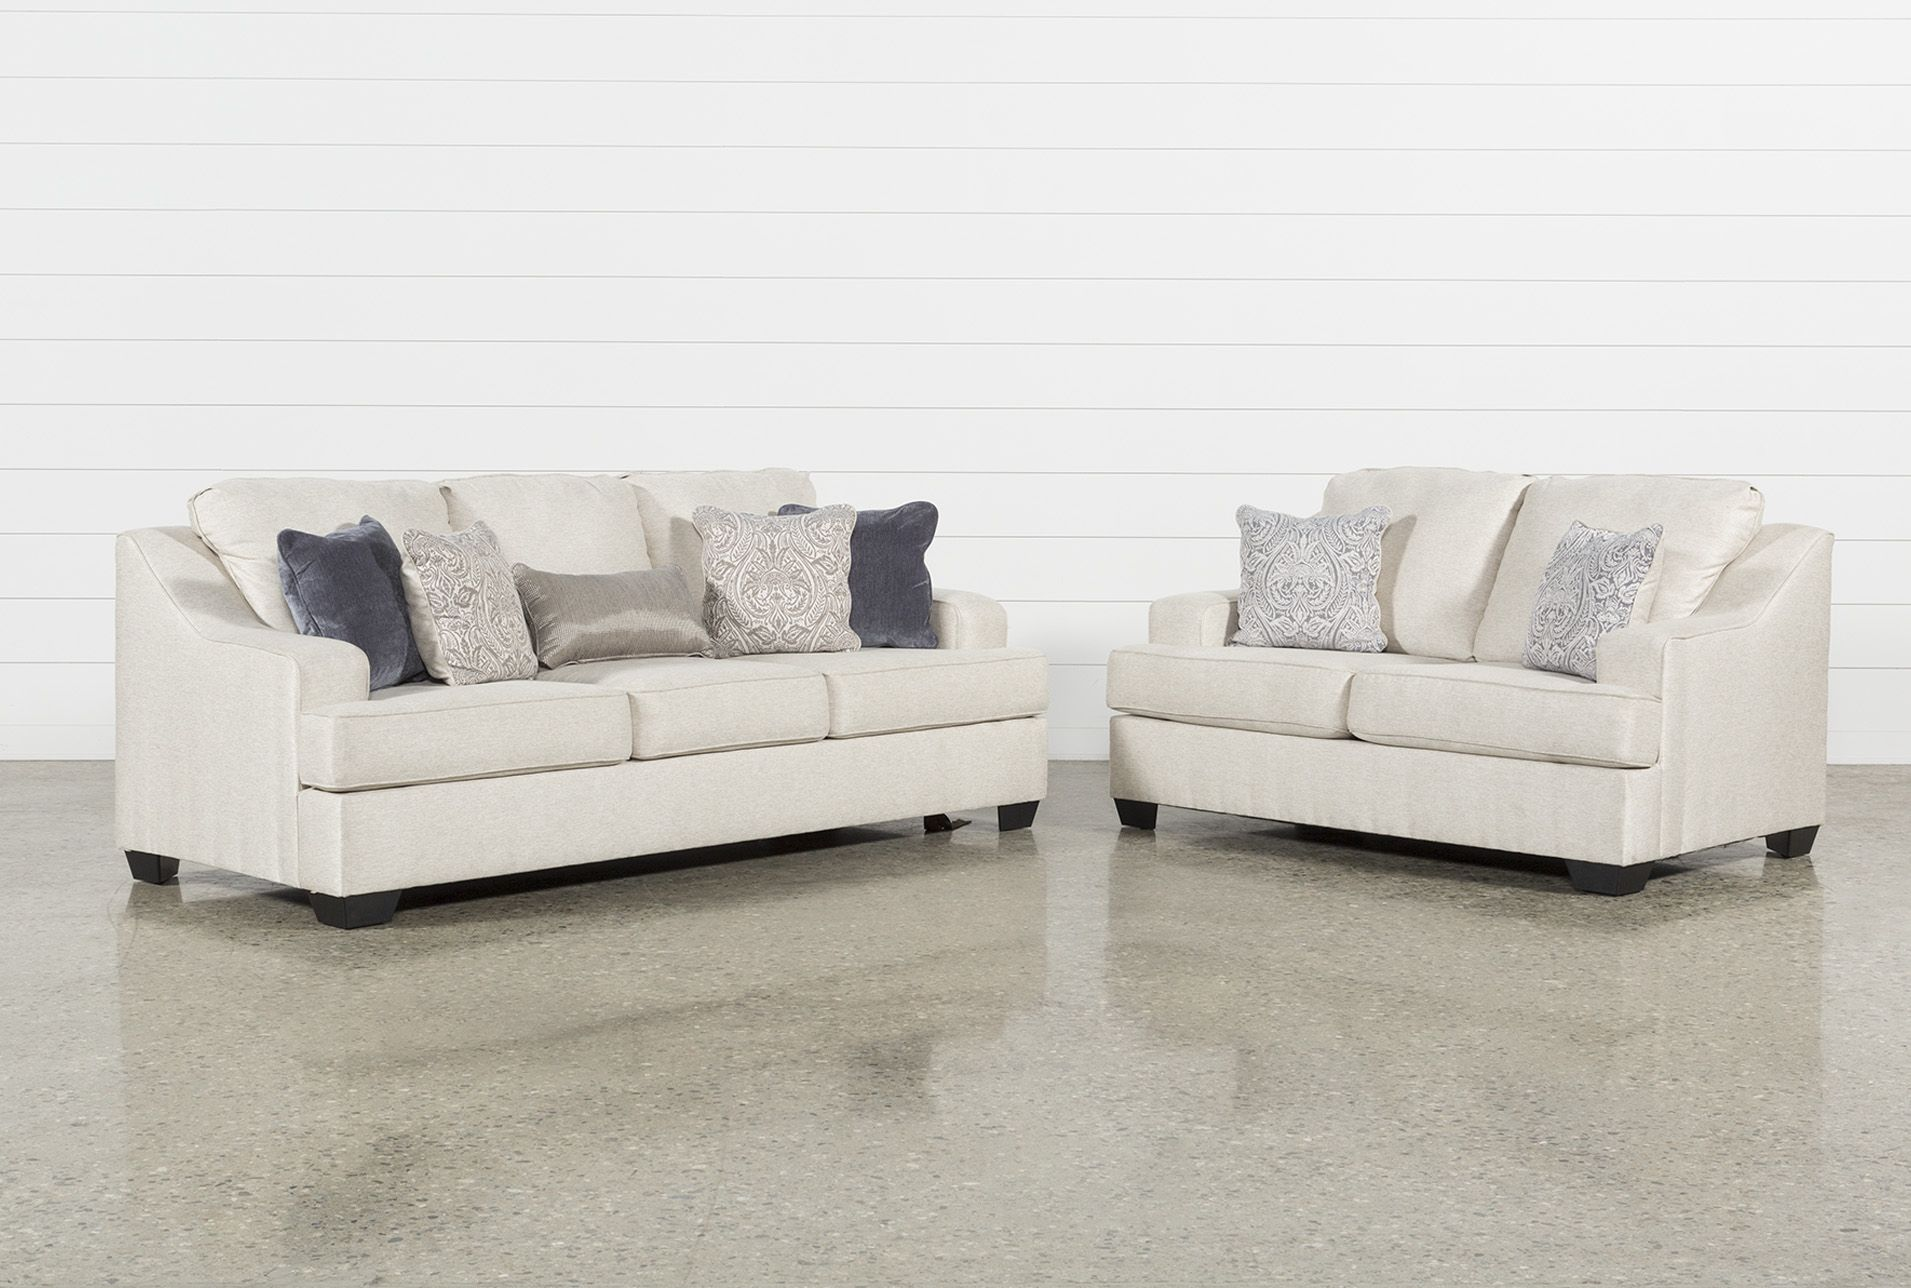 Best Ashley Brumbeck 2 Piece Living Room Set Beige 975 640 x 480